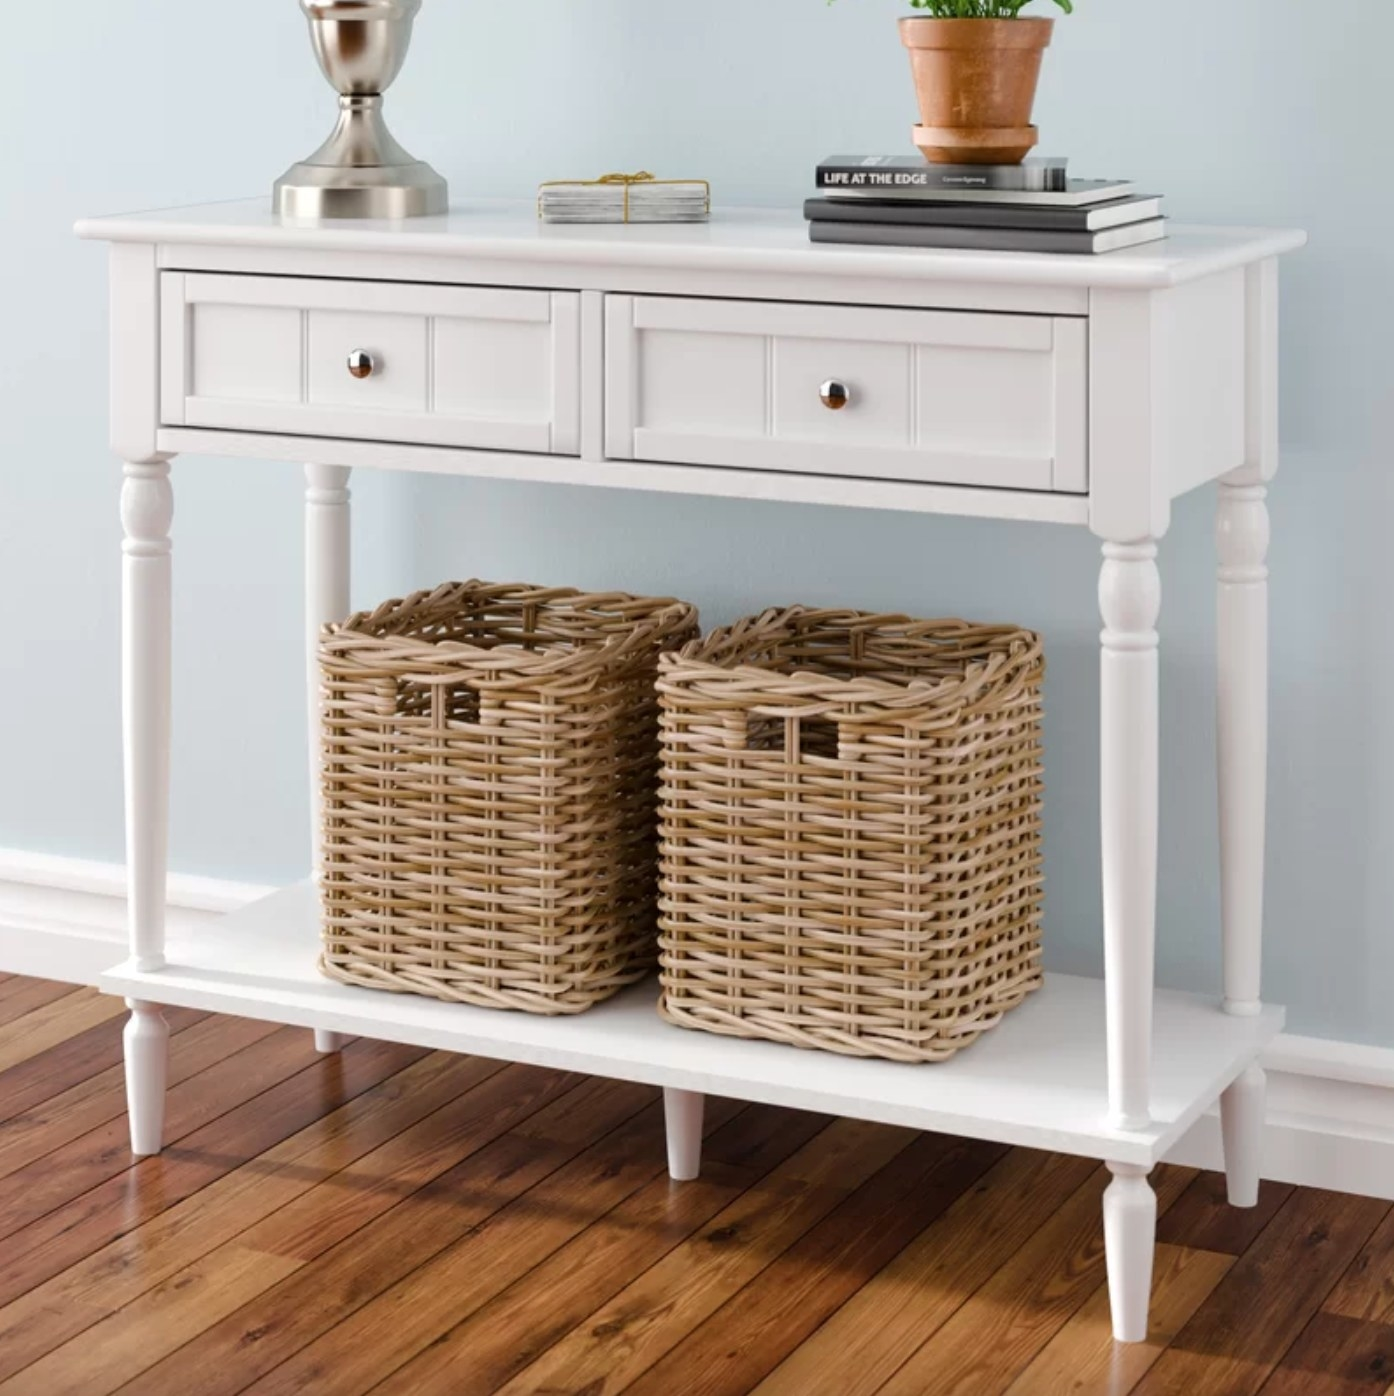 The console table in white